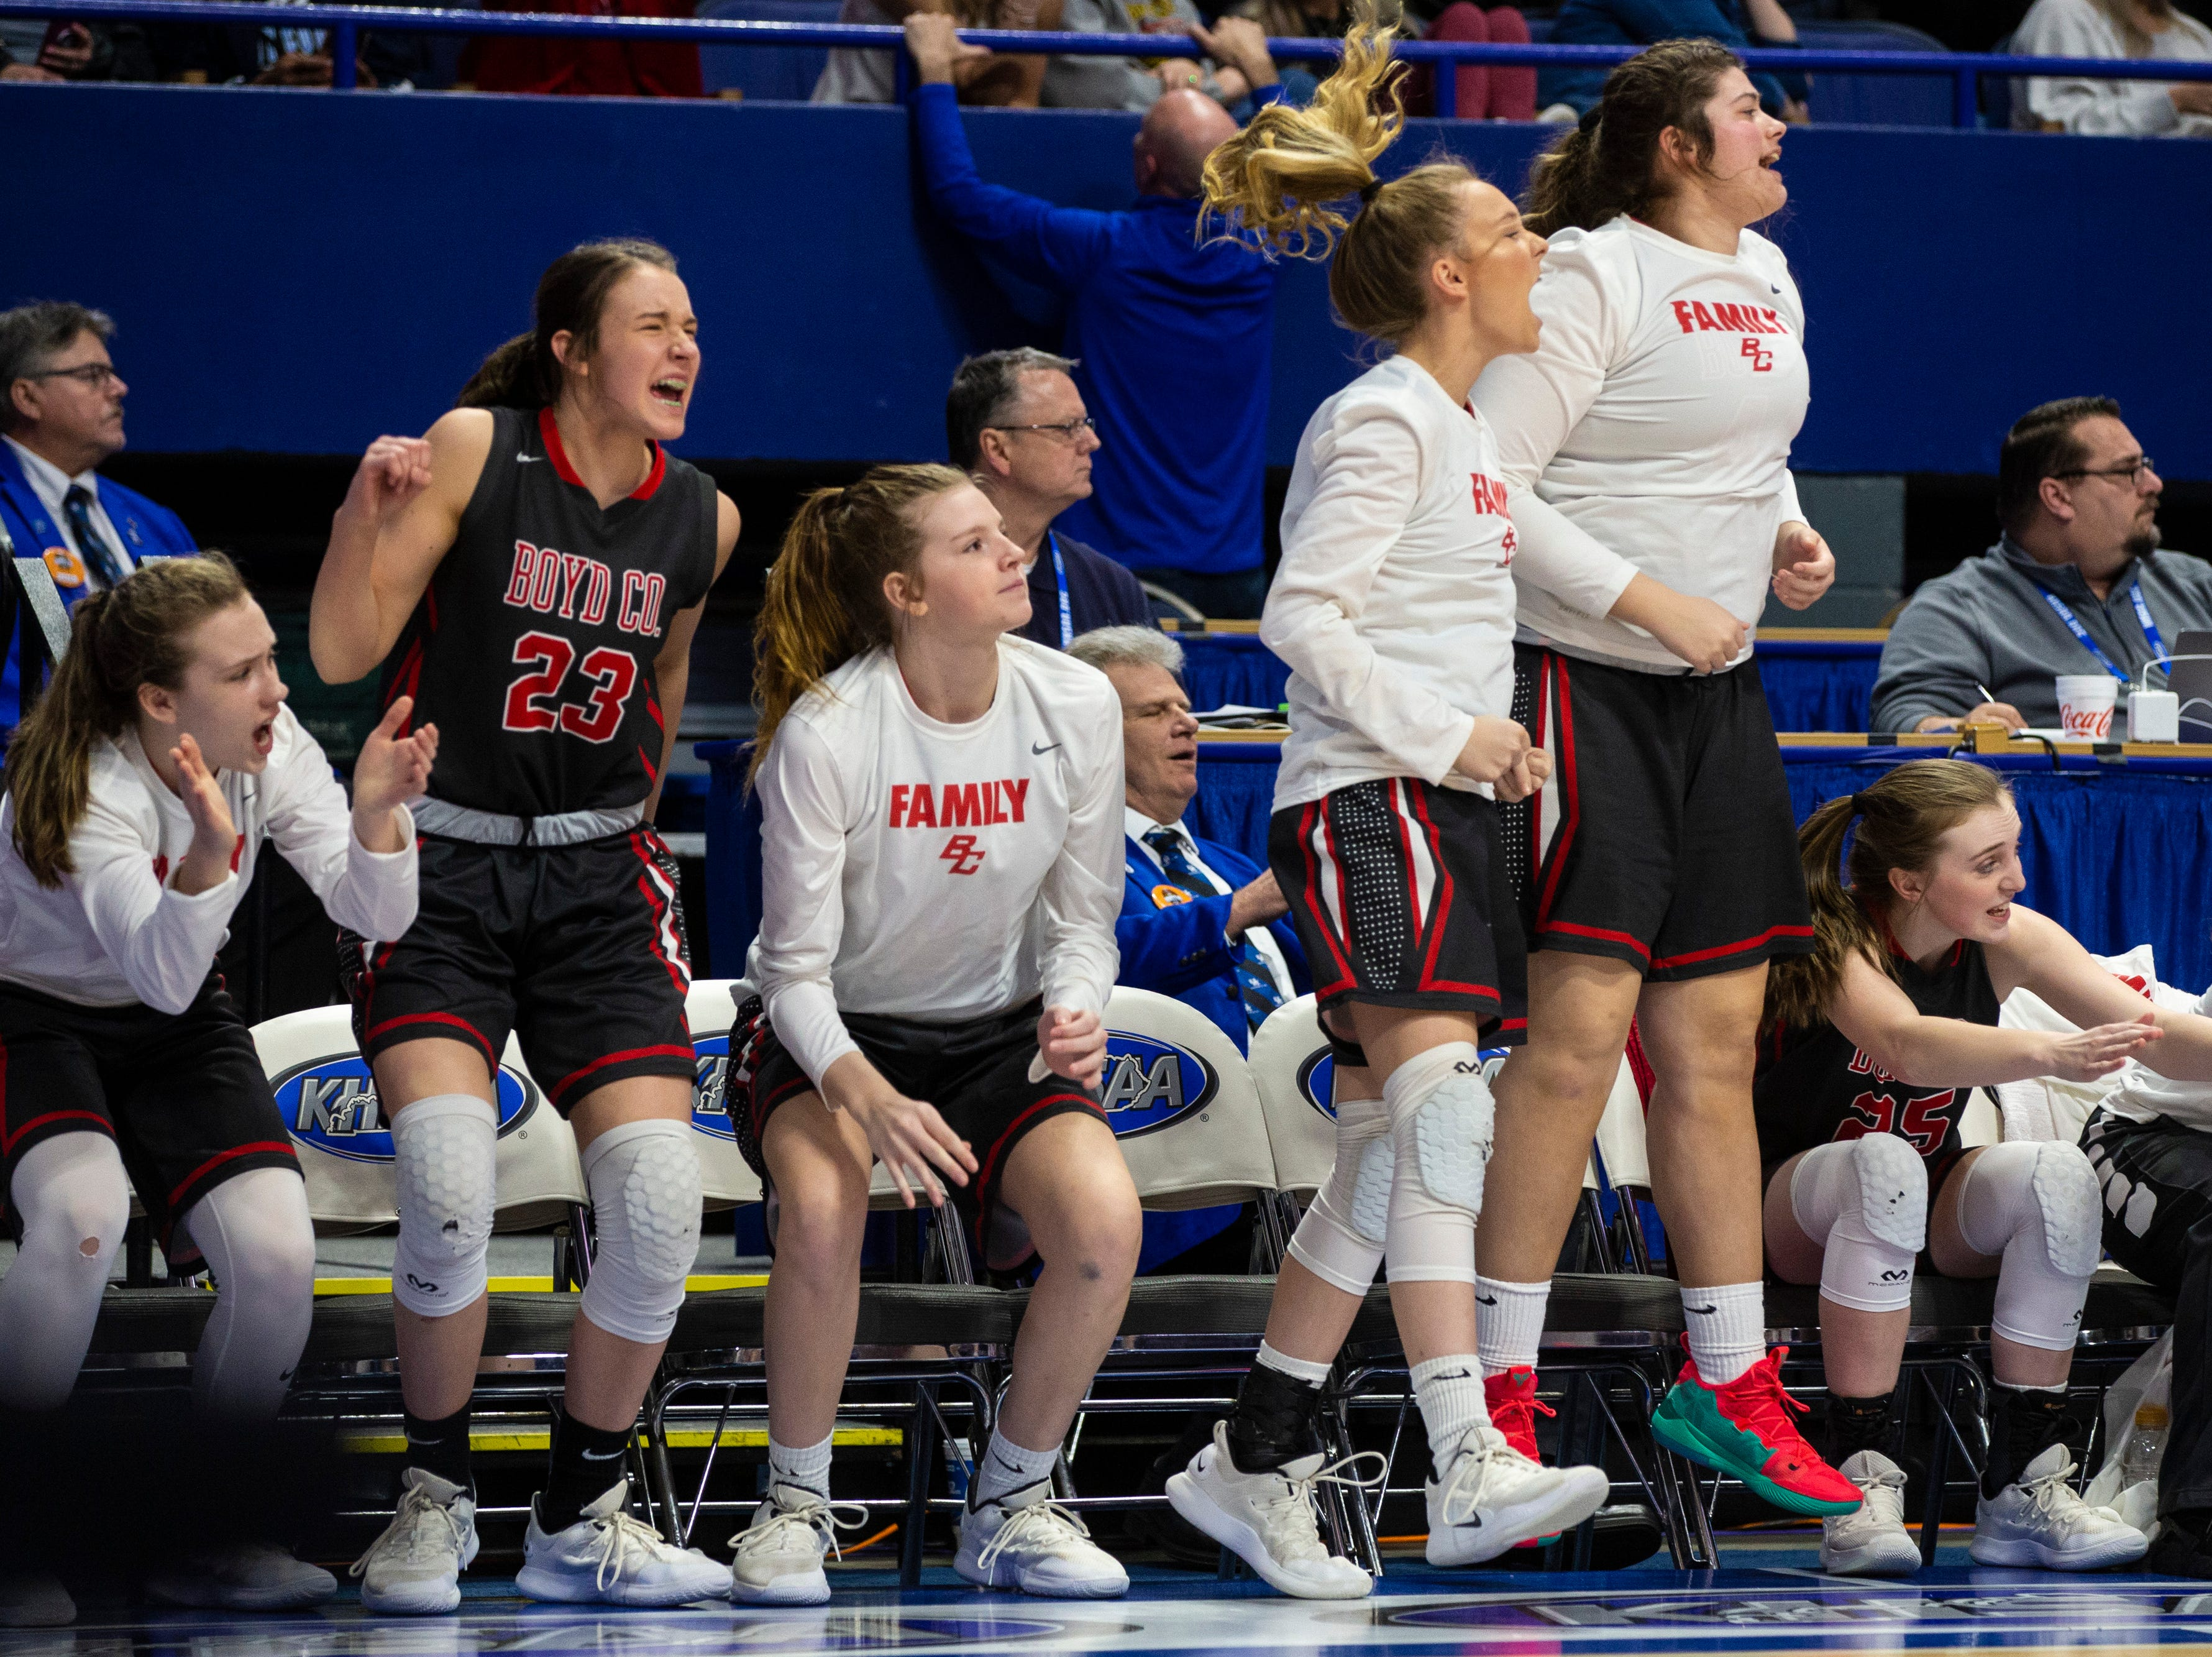 The Boyd County bench celebrates as Boyd County took on Louisville Male in the KHSAA state basketball tournament in Rupp Arena. Male eliminated Boyd County 74-56. March 14, 2019